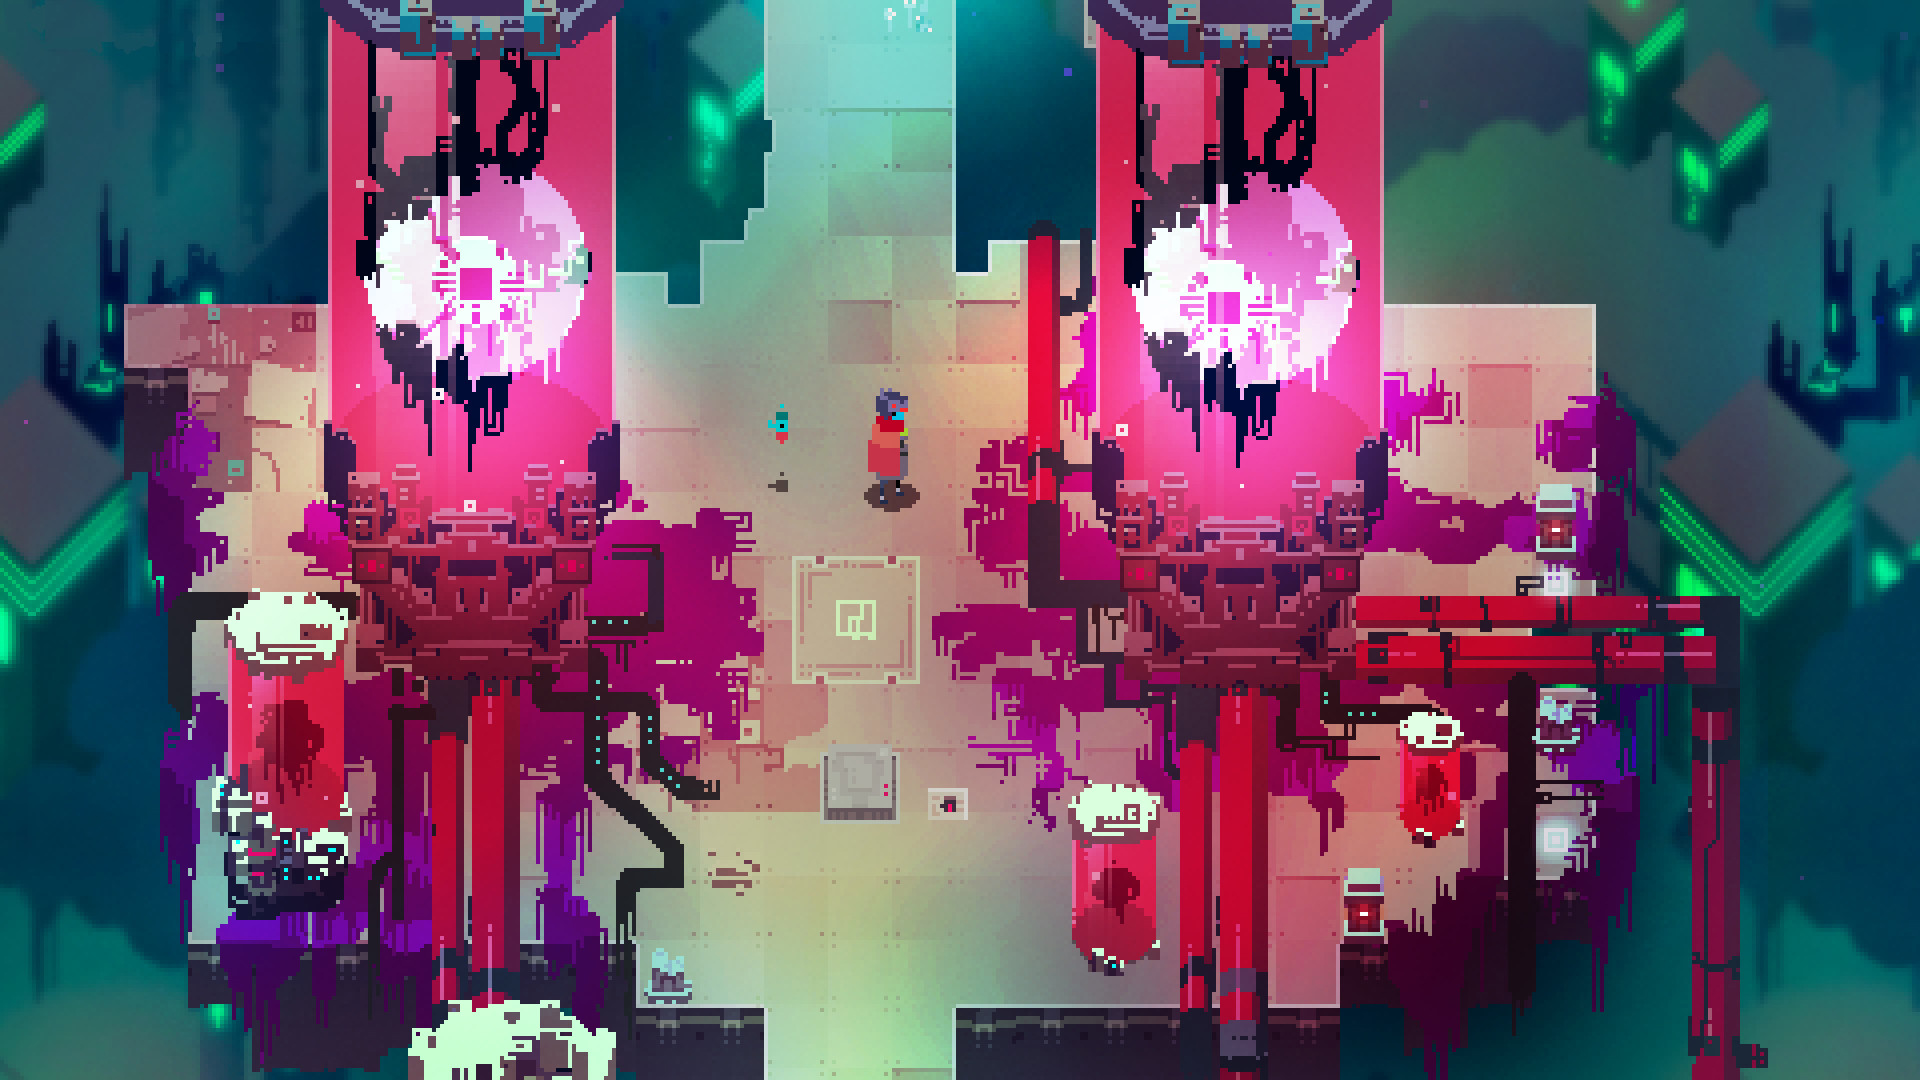 This weekend's PlayStation Network flash sale has gems like Hyper Light Drifter